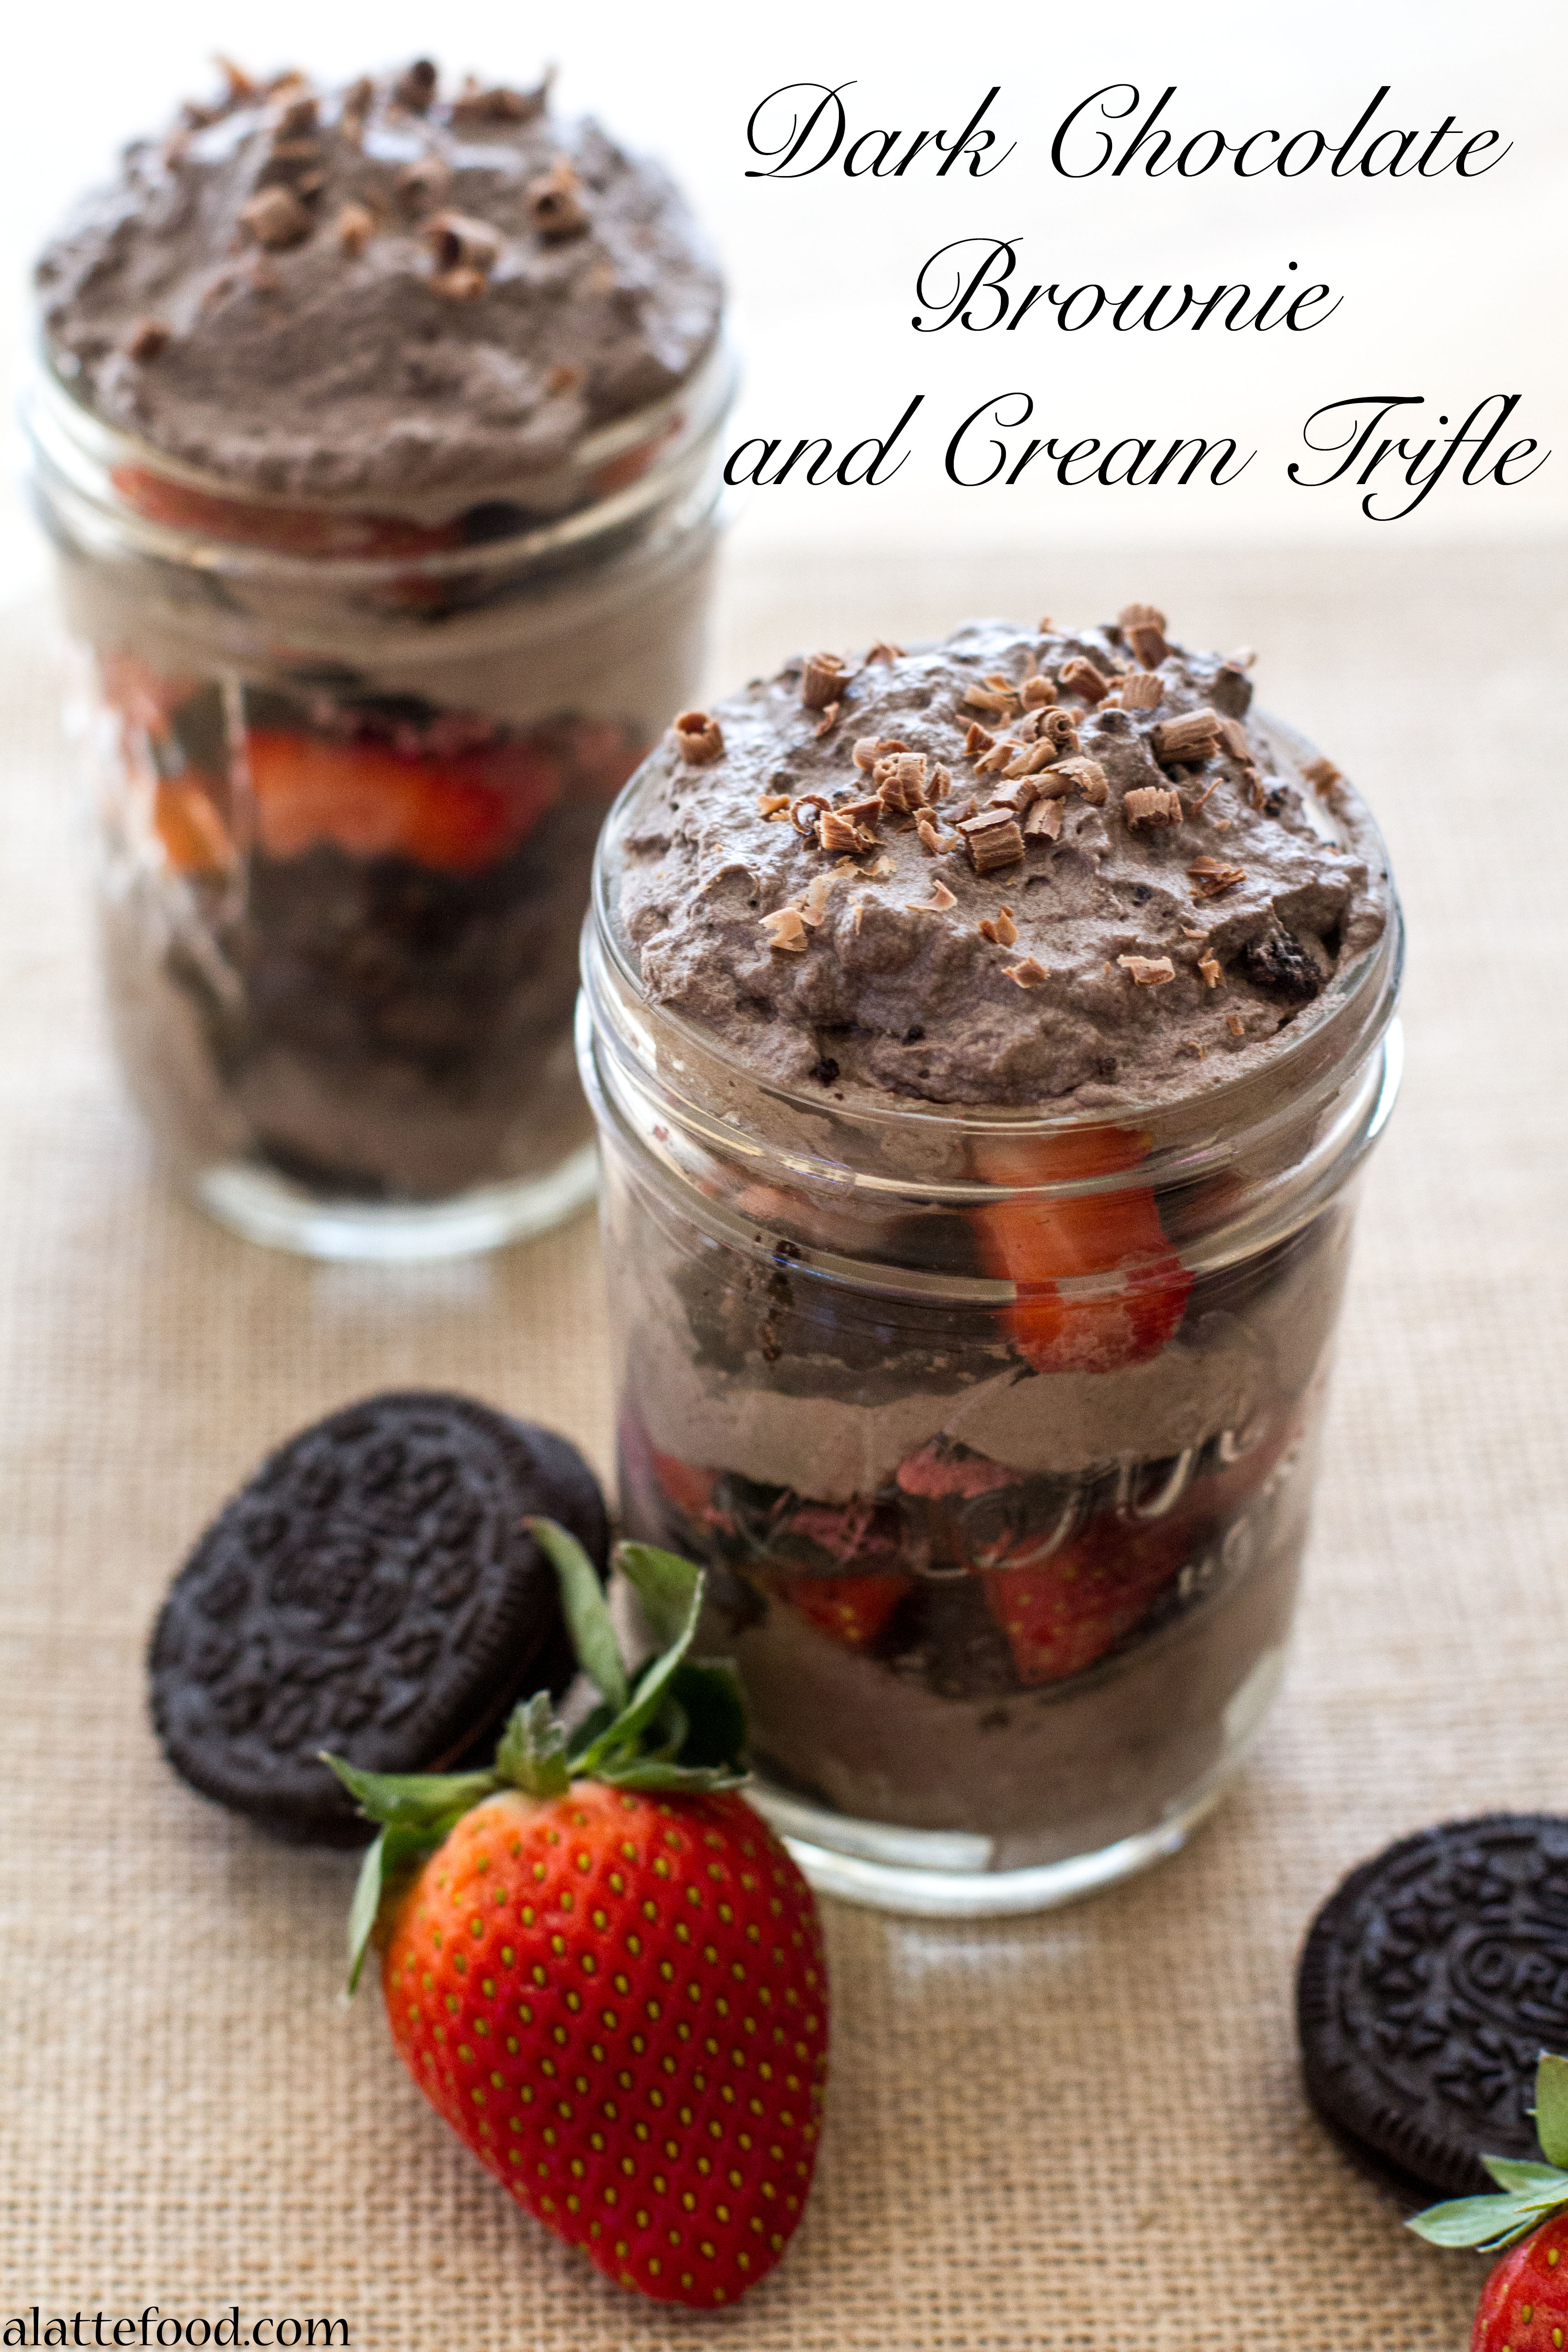 DARK CHOCOLATE BROWNIE AND CREAM TRIFLE